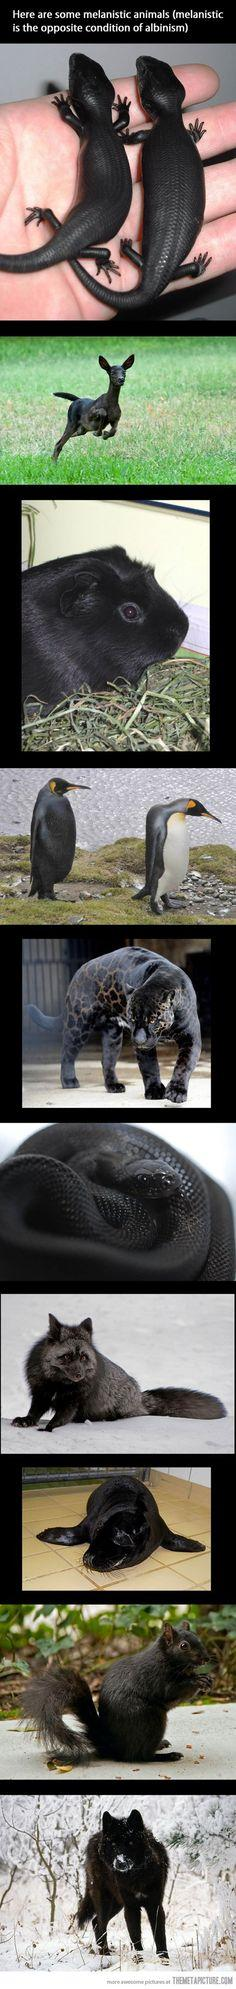 melanistic animals- I feel stupid for not knowing this condition existed. I mean, since there is an opposite for nearly everything- why not albinism?: Pet Snake, Awesome, Beautiful, Melanistic Animals